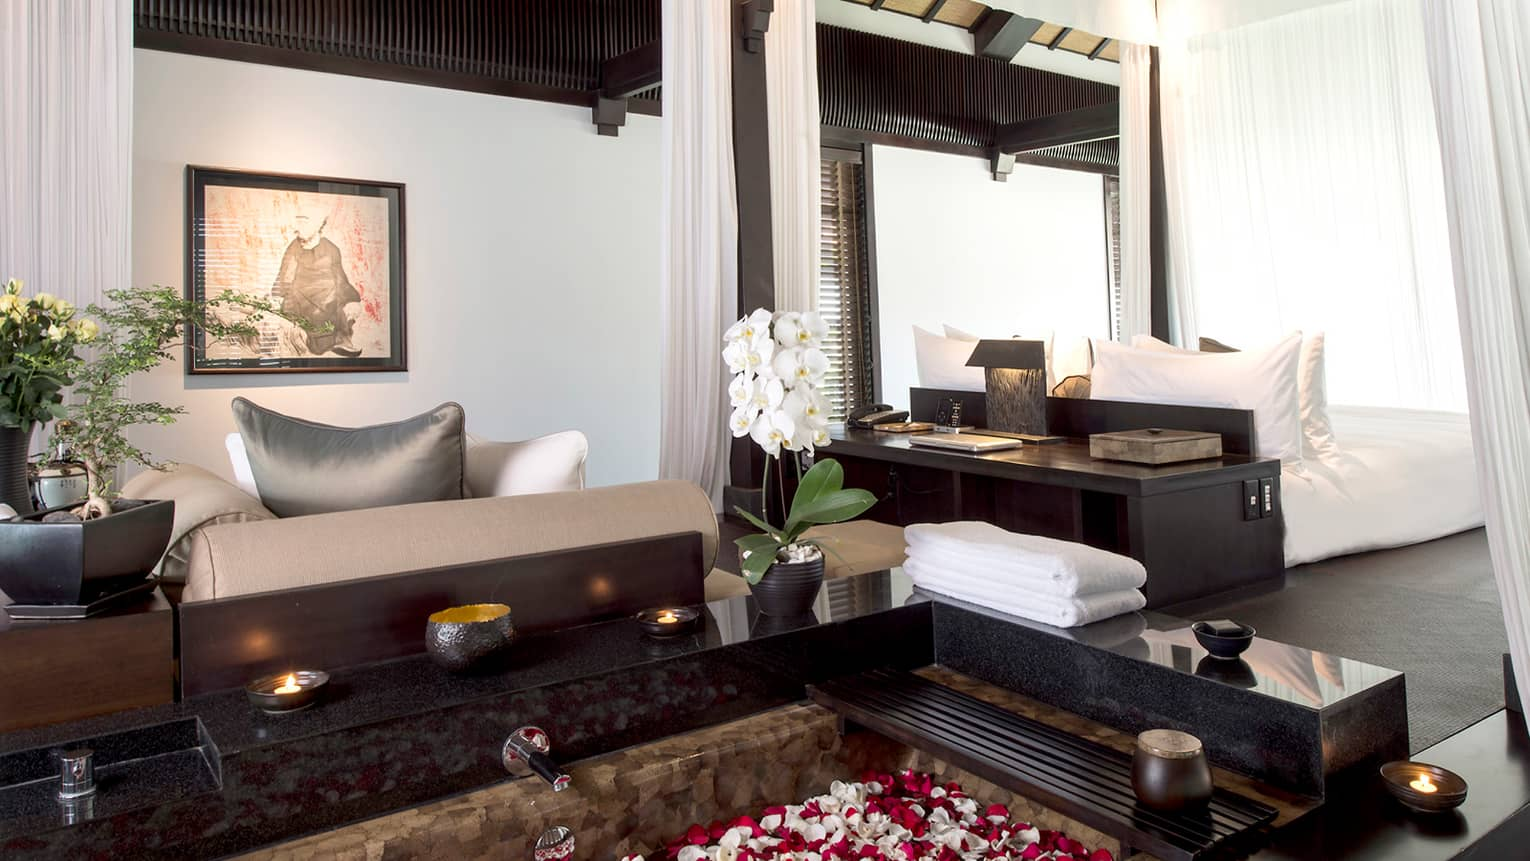 Pool Villa candle-lit tub filled with flower petals in middle of bright room, sofas